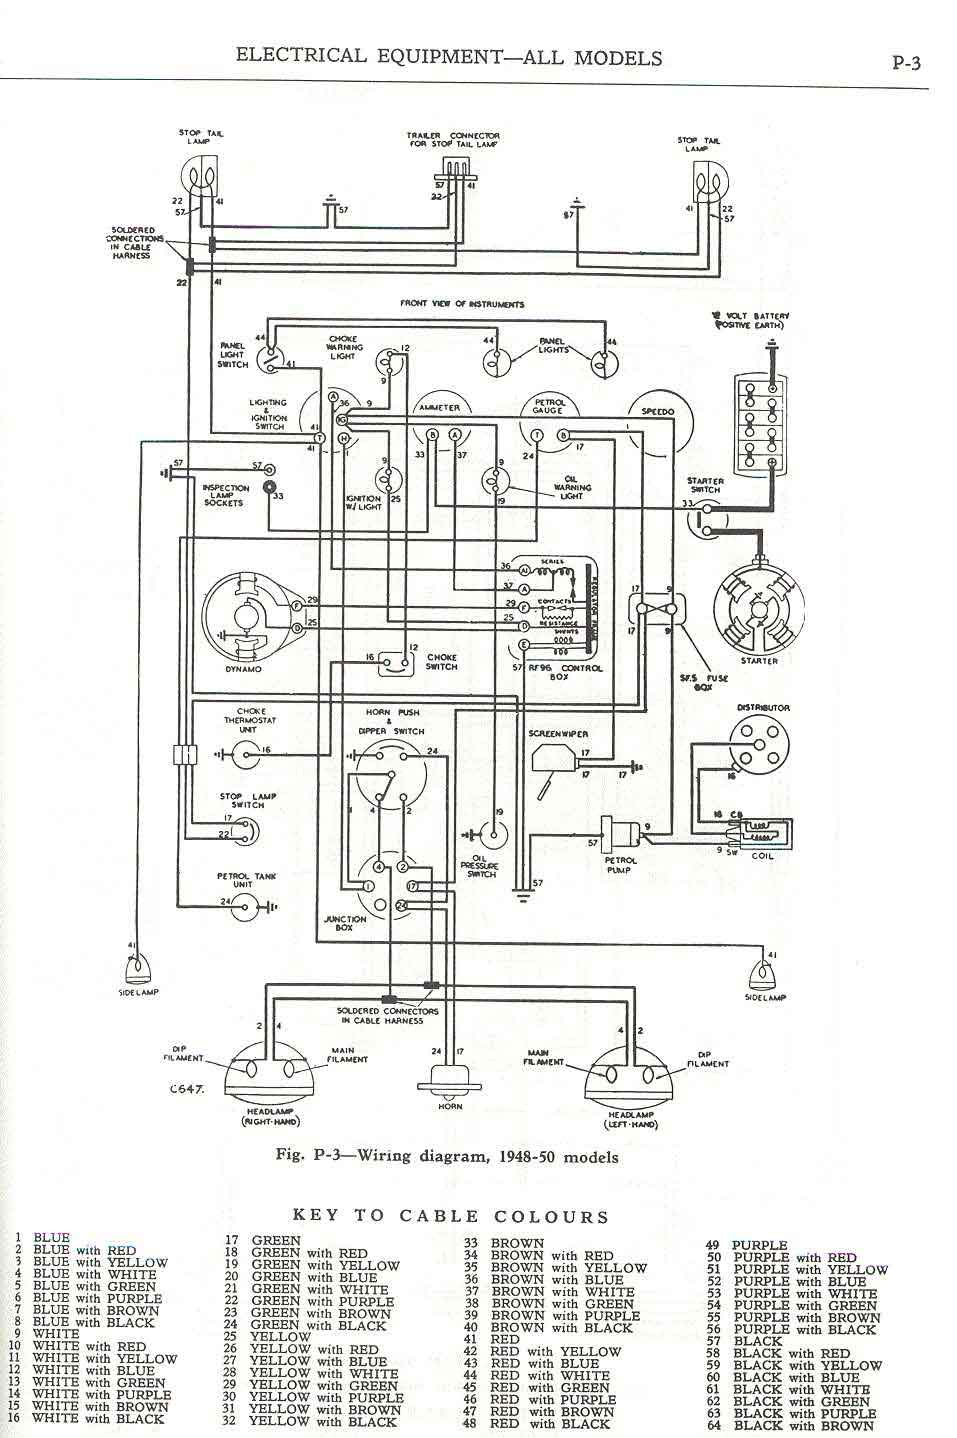 Land Rover Discovery 1 Electrical Wiring Diagram : Land rover discovery diagram free engine image